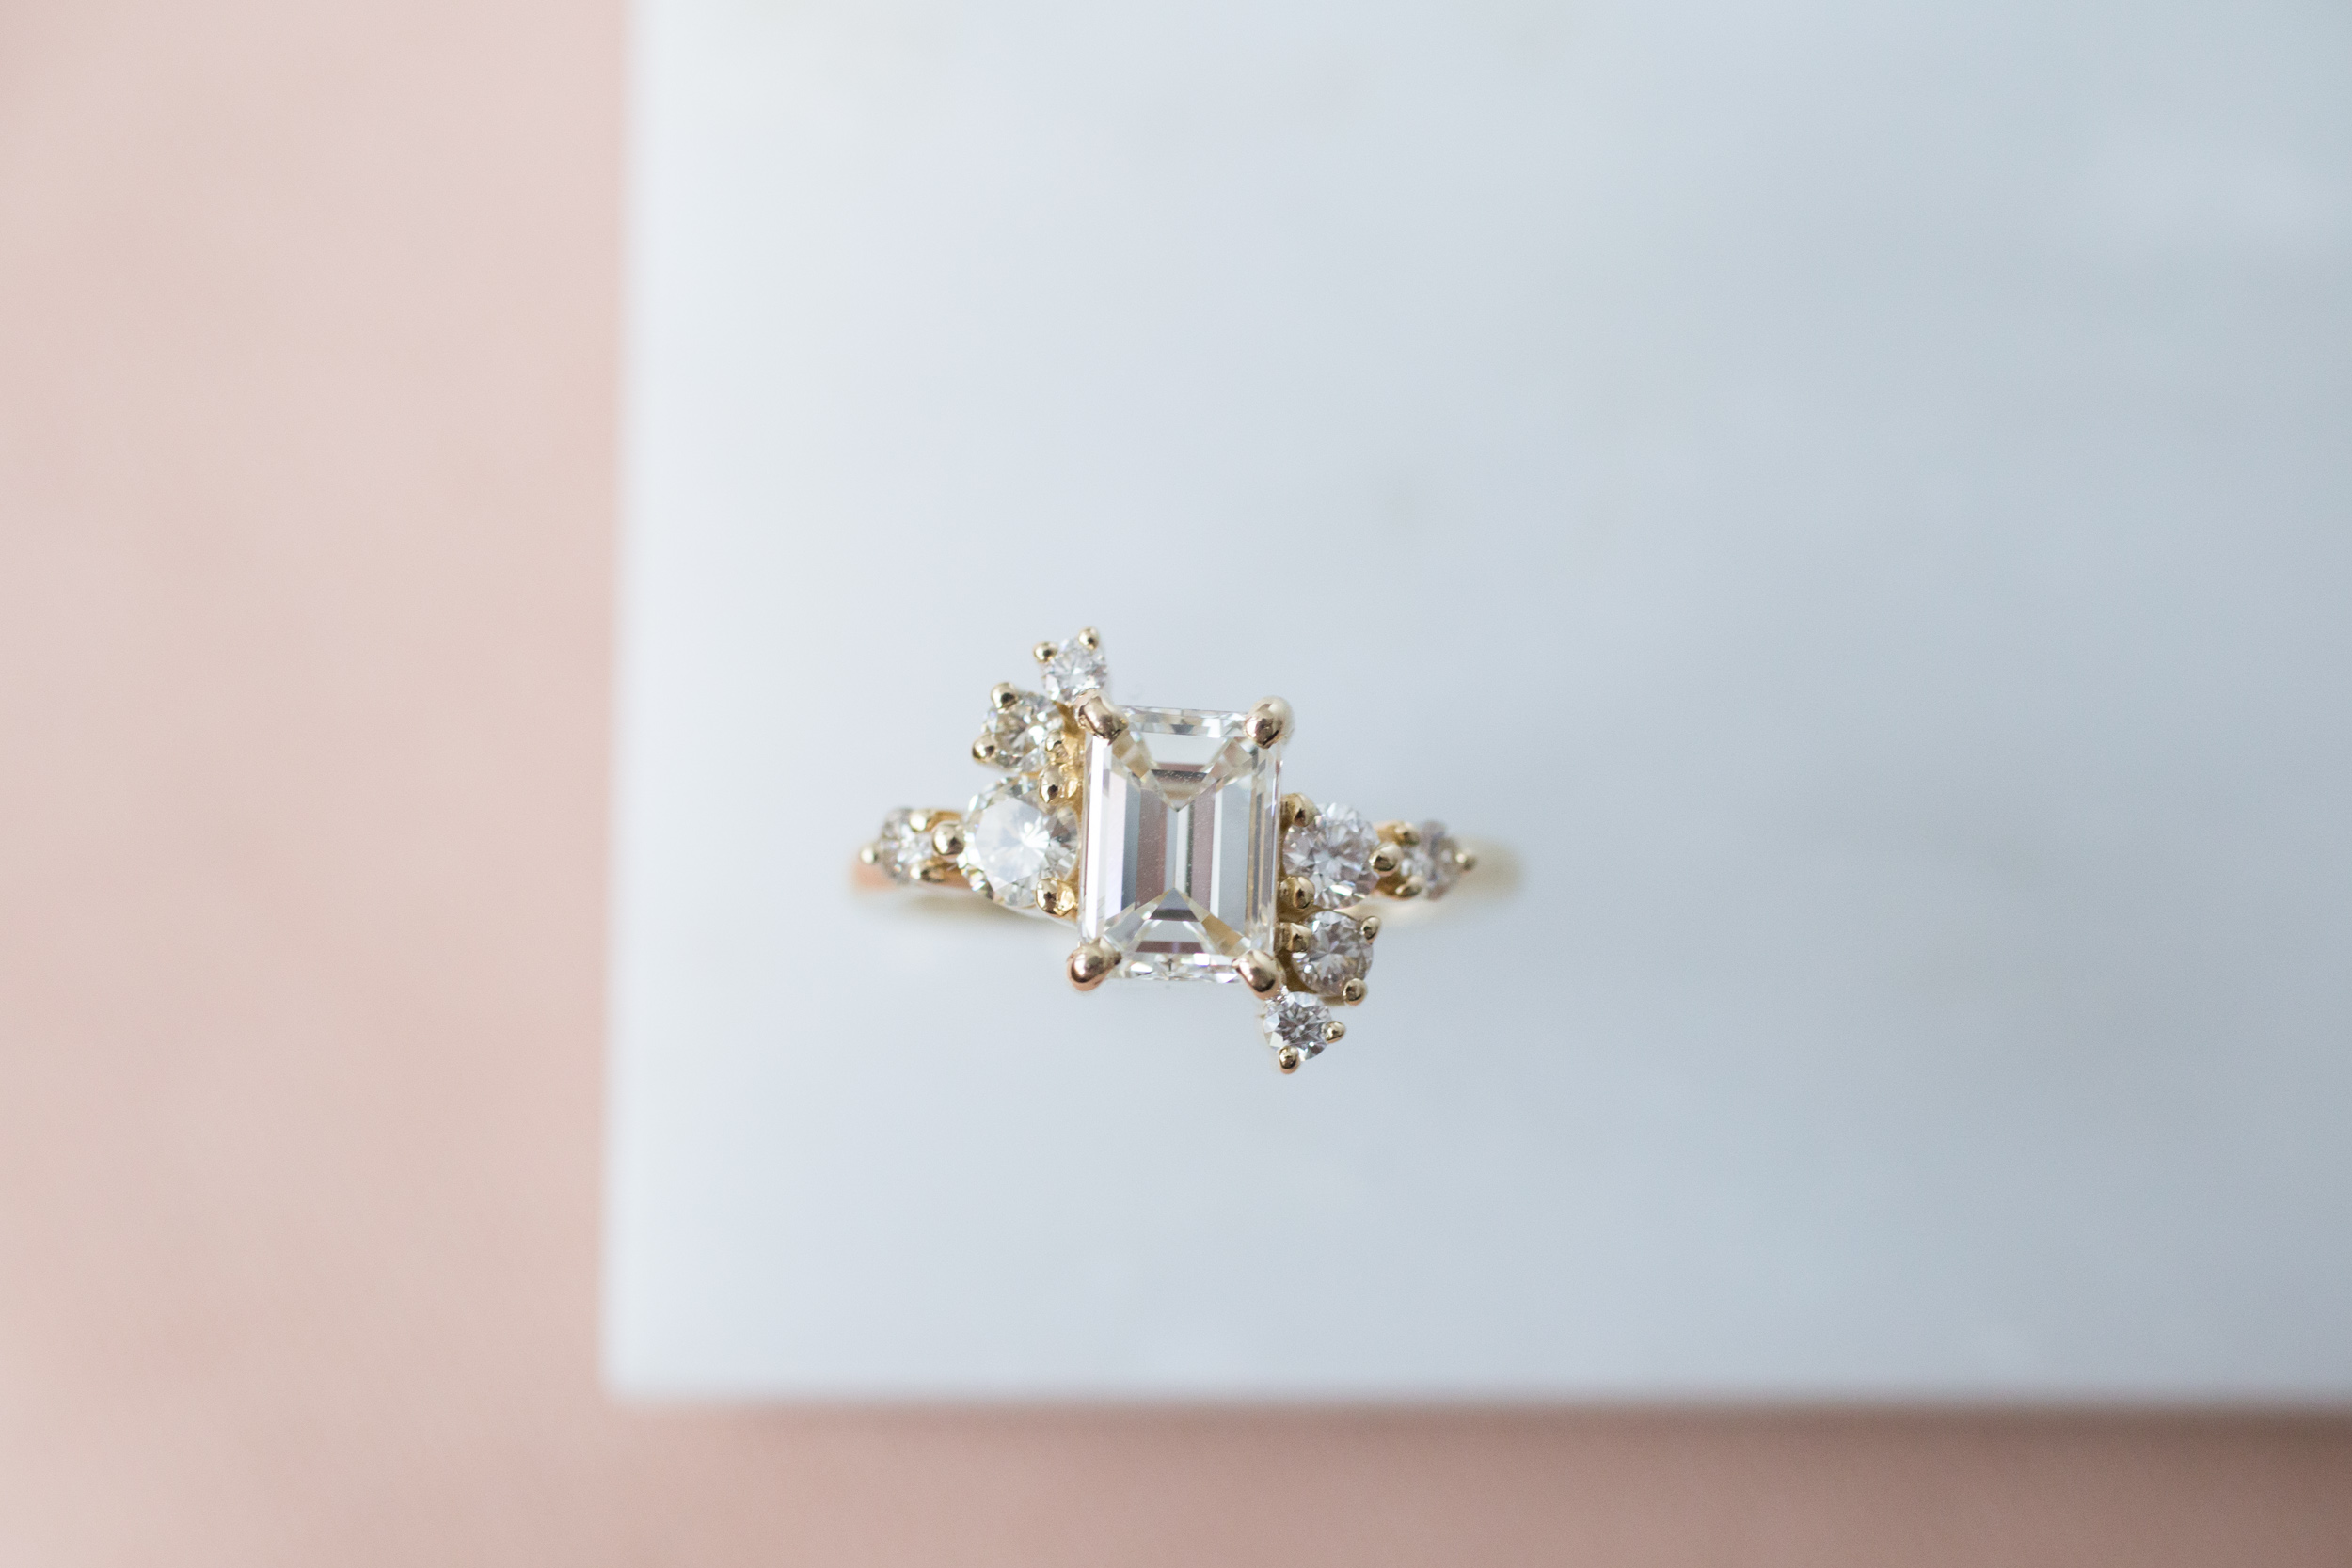 Lance + Kaylee Heirloom Emerald Cut Diamond Cluster Ring-9.jpg